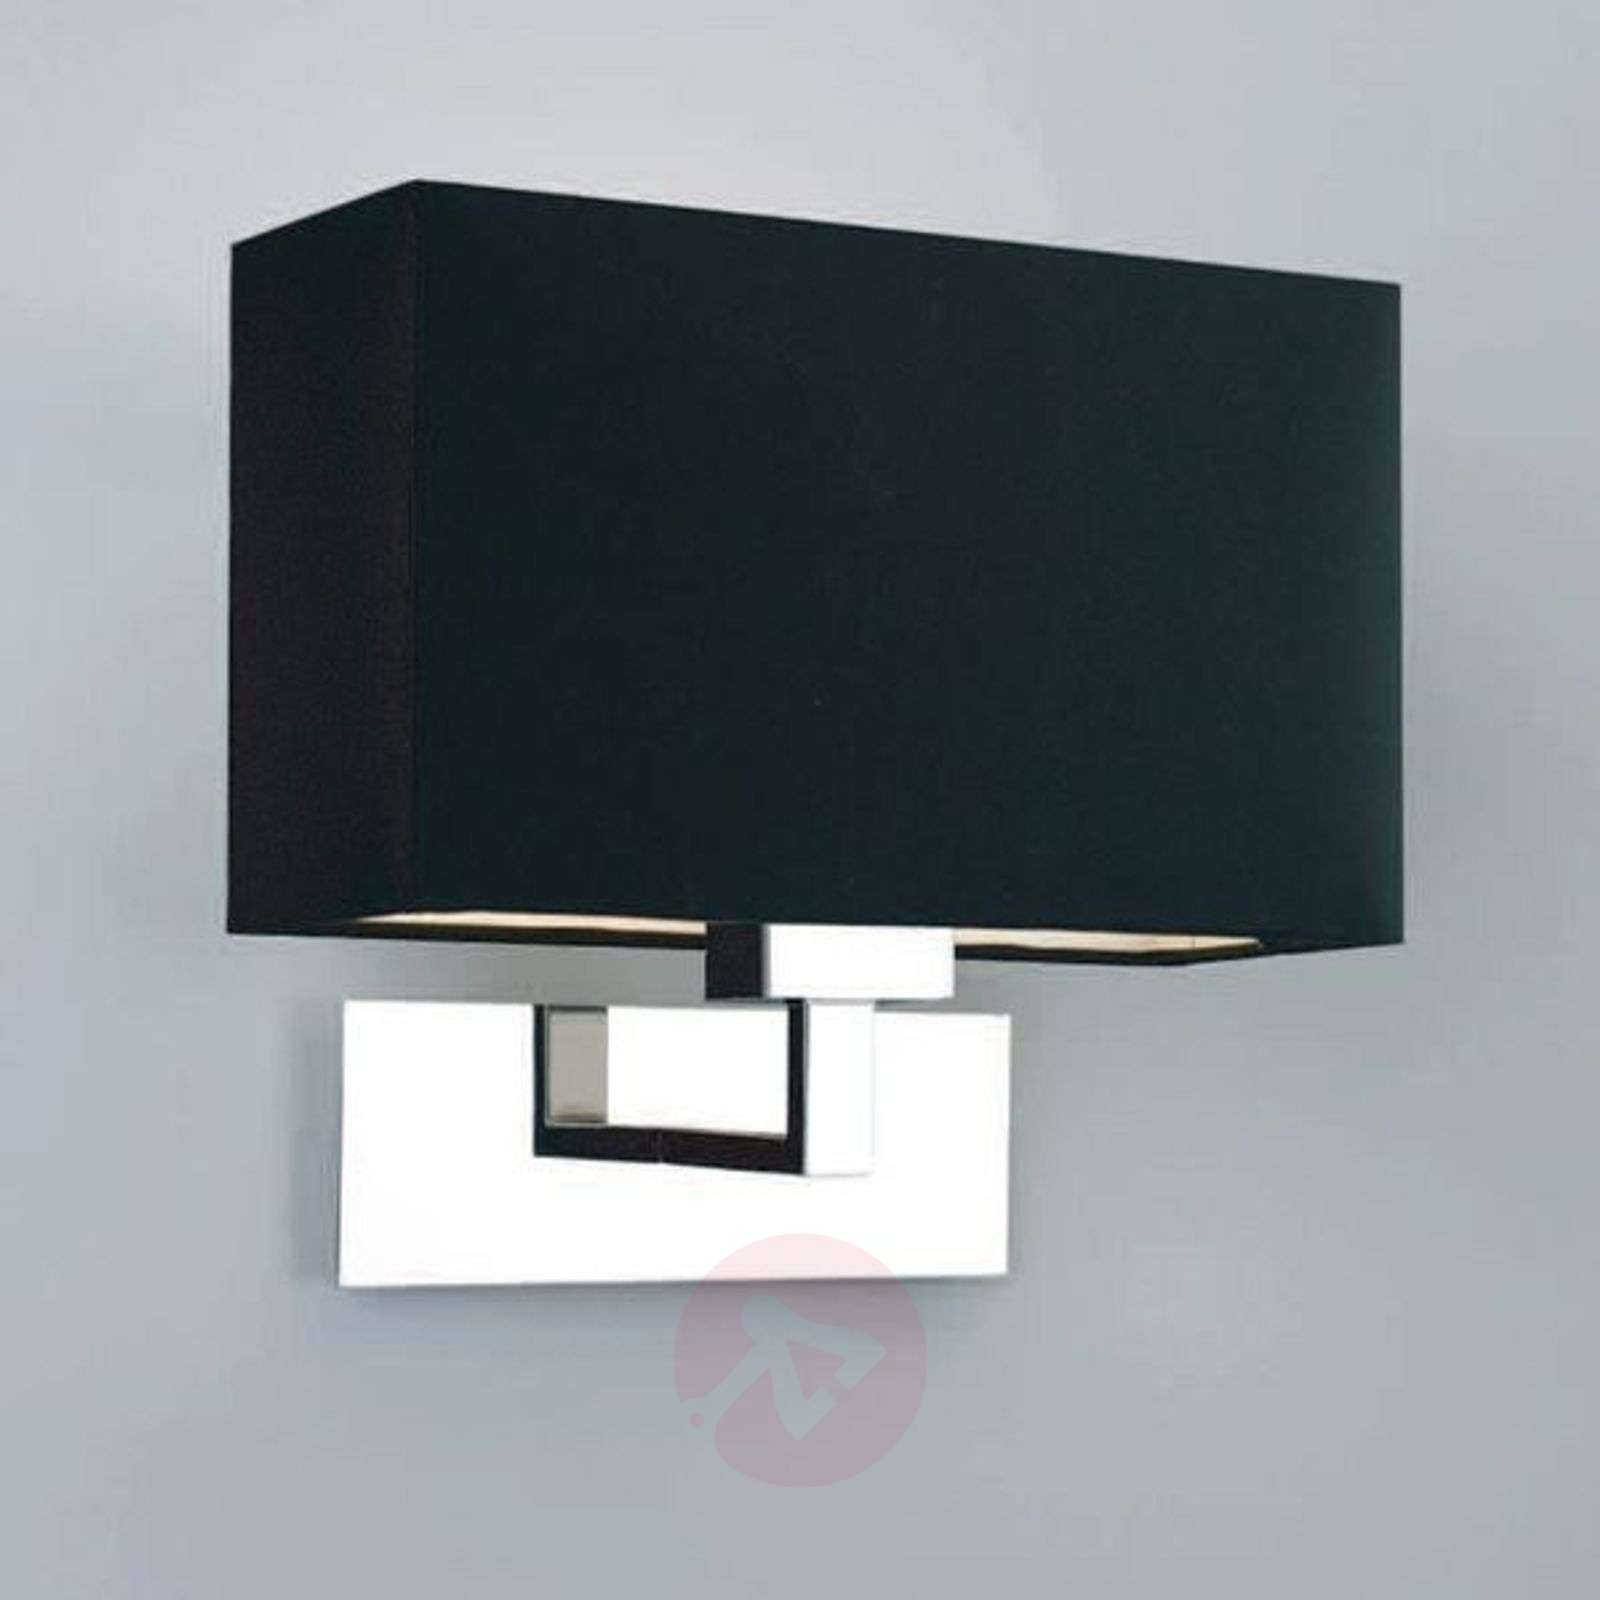 Park Lane Grande Wall Light-1020169X-01